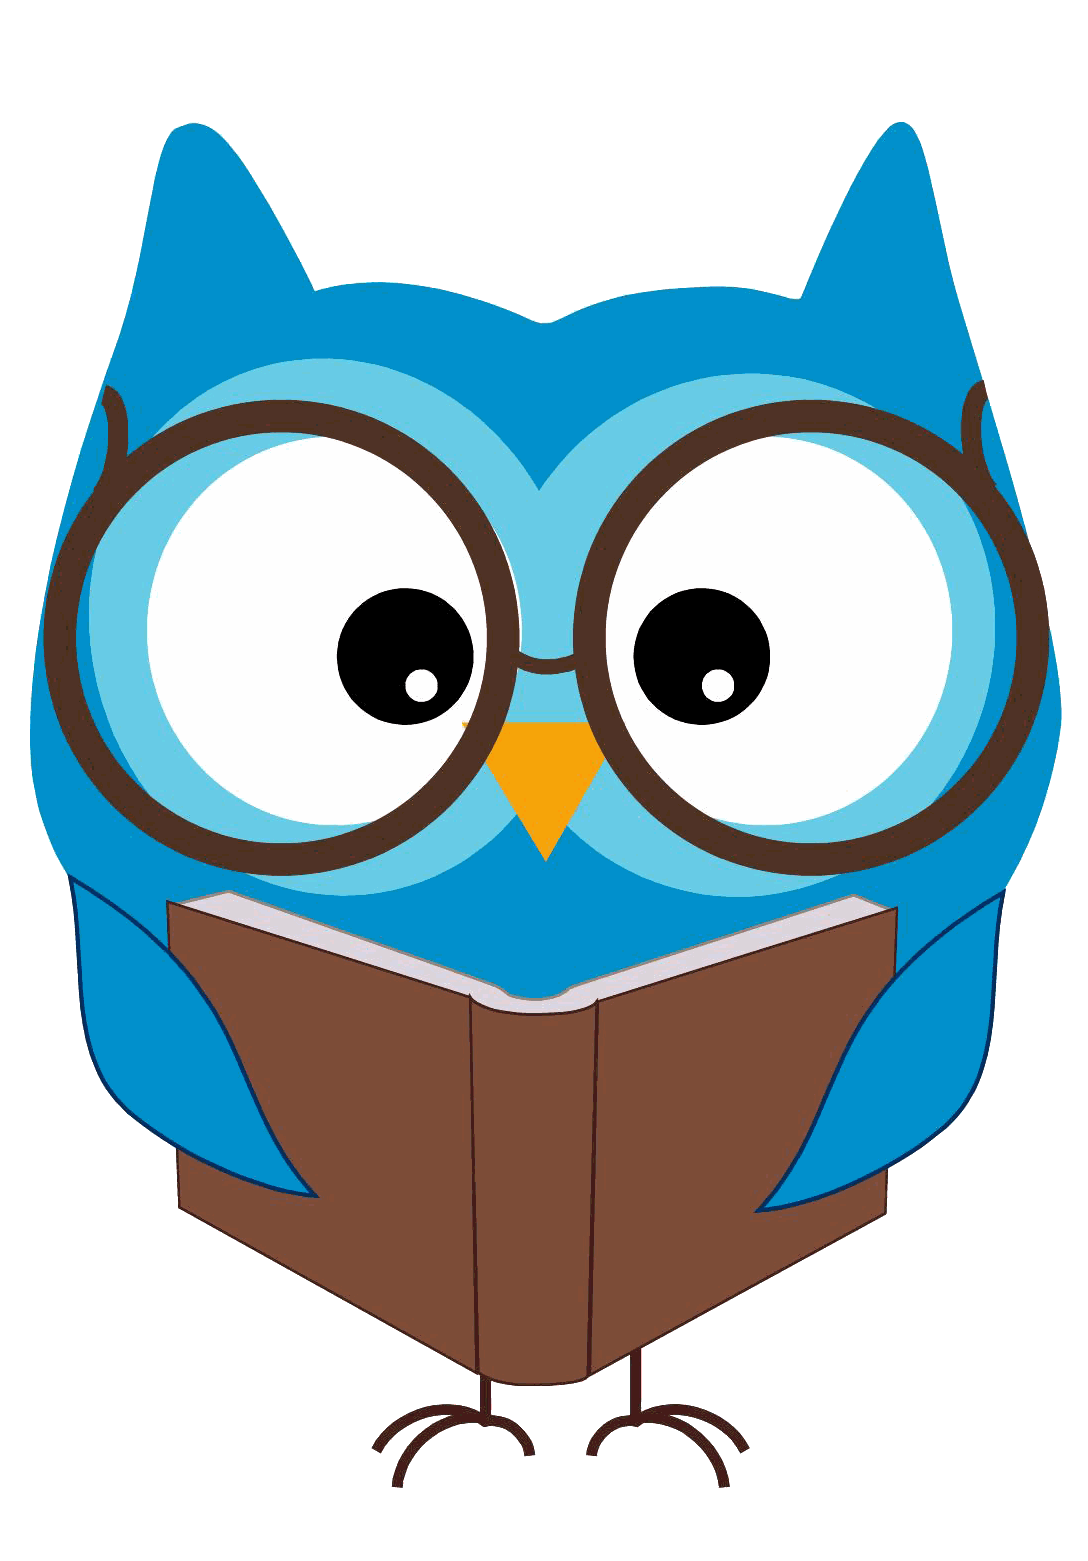 Tree clipart owl. Cute at getdrawings com